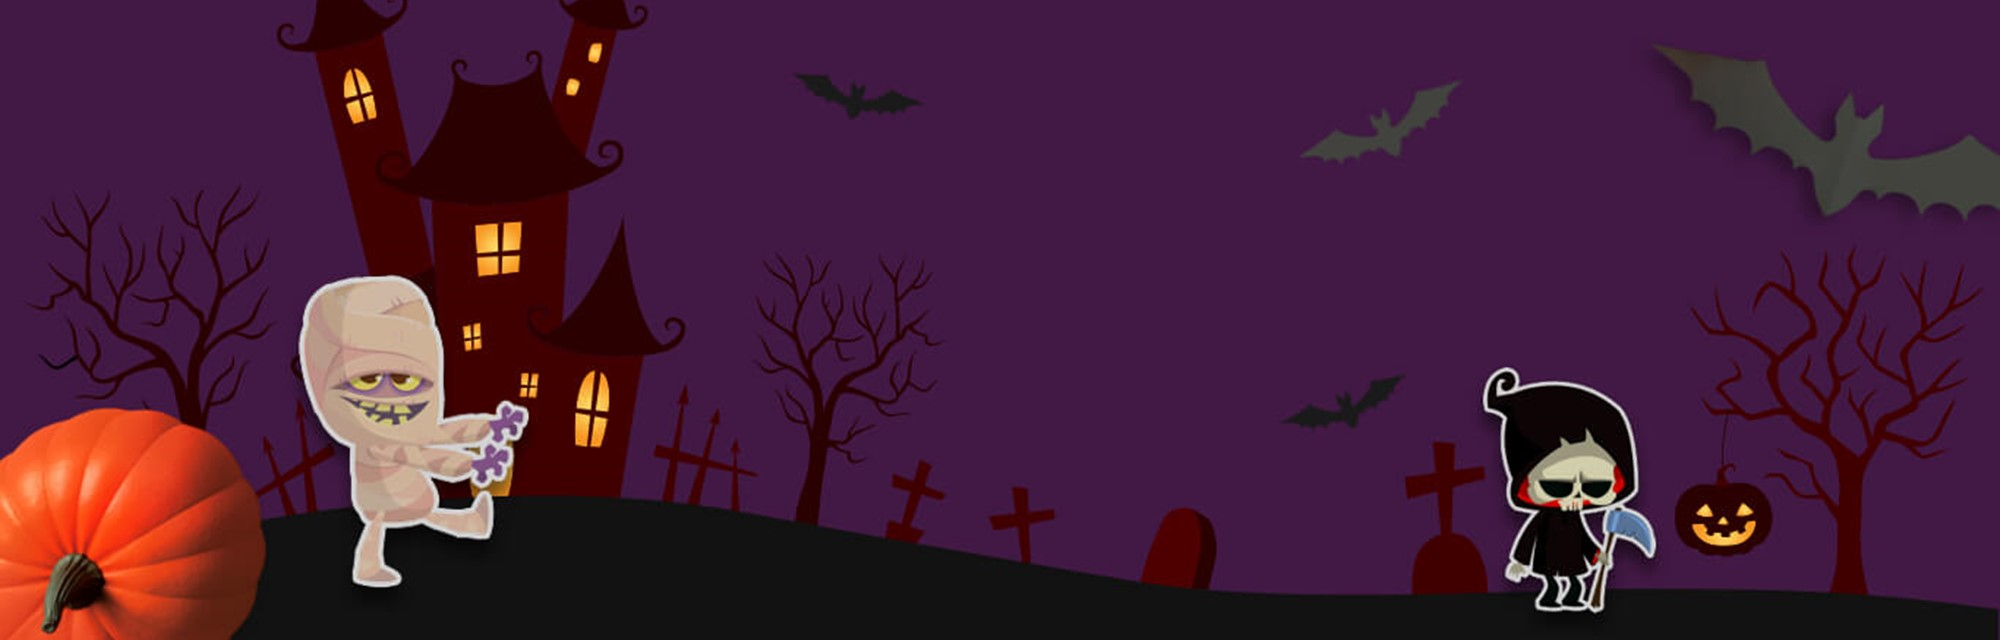 Header - Halloween Competition Banner